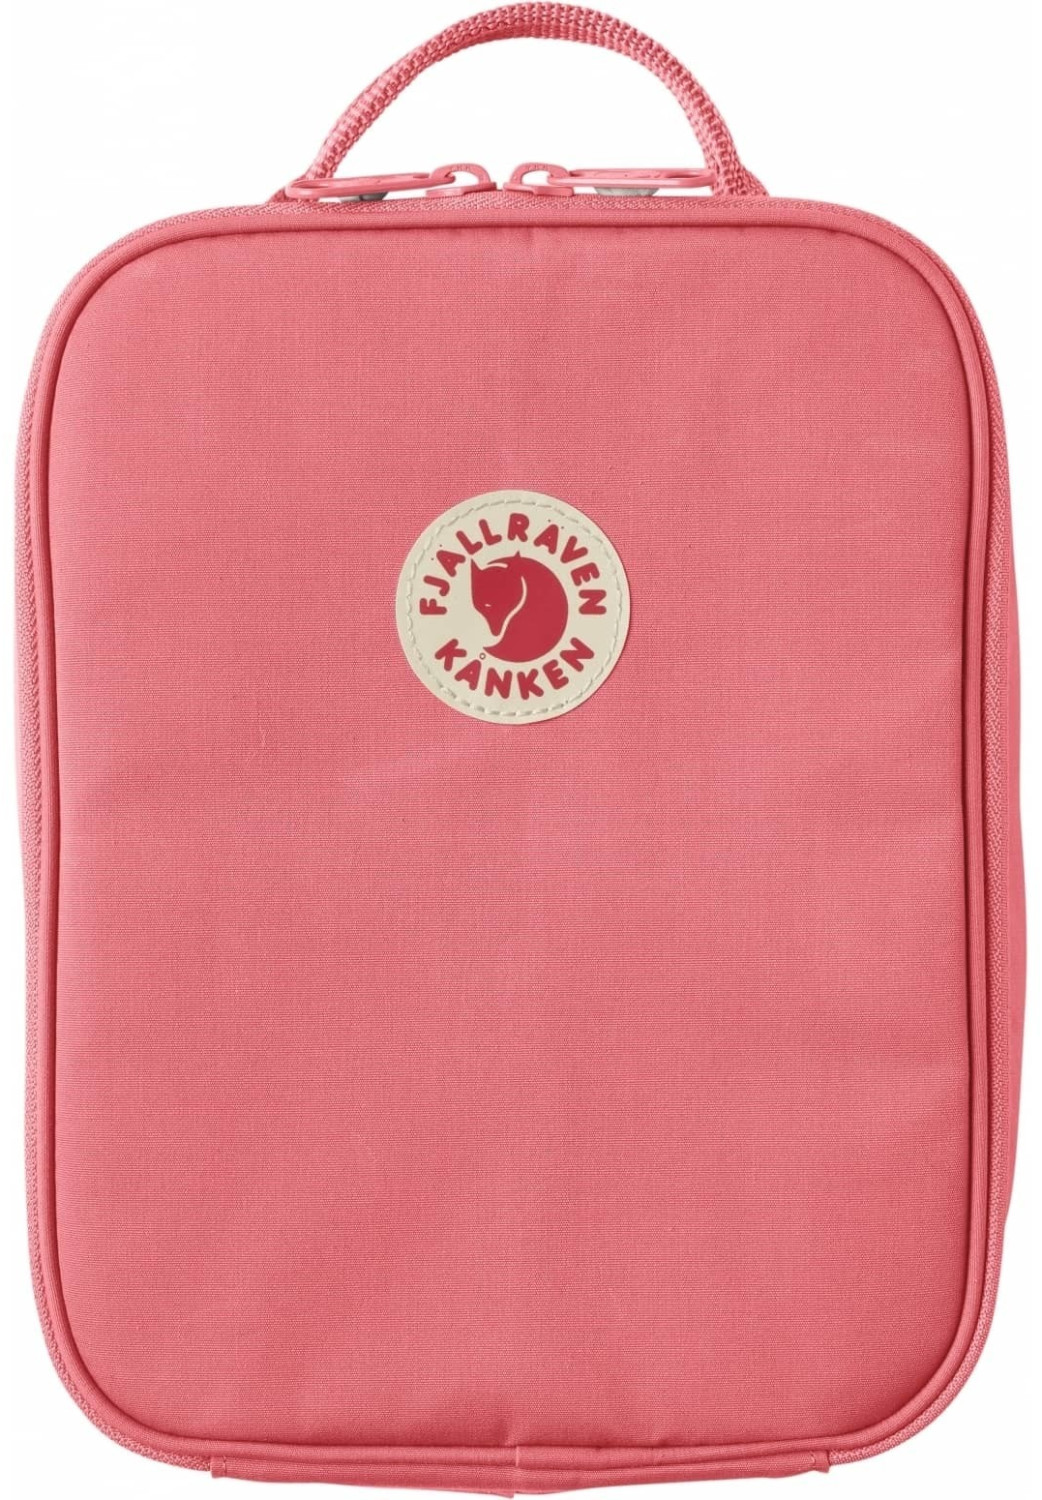 Image of Fjällräven Kånken Mini Cooler Peach Pink